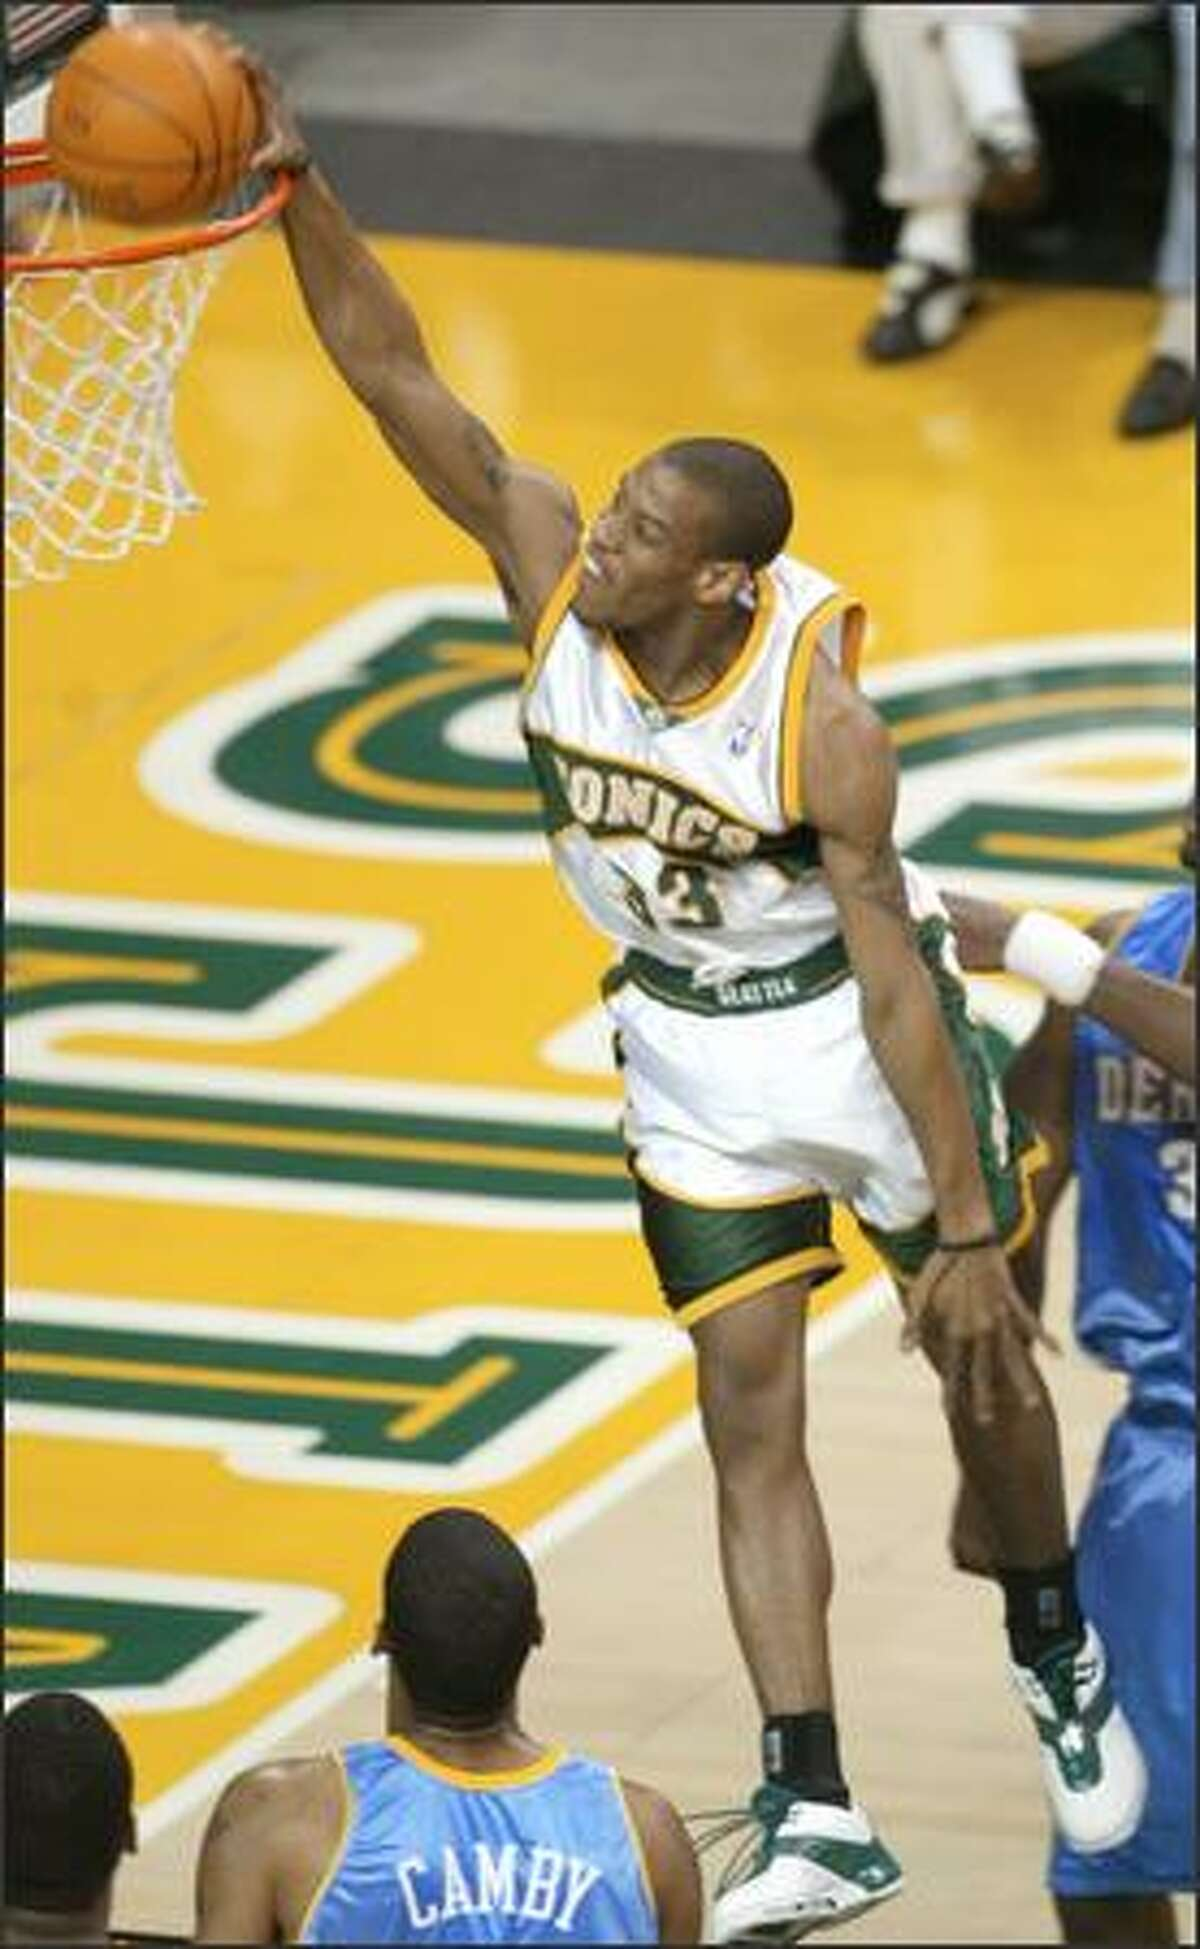 Antonio Daniels drops one through for the Sonics.